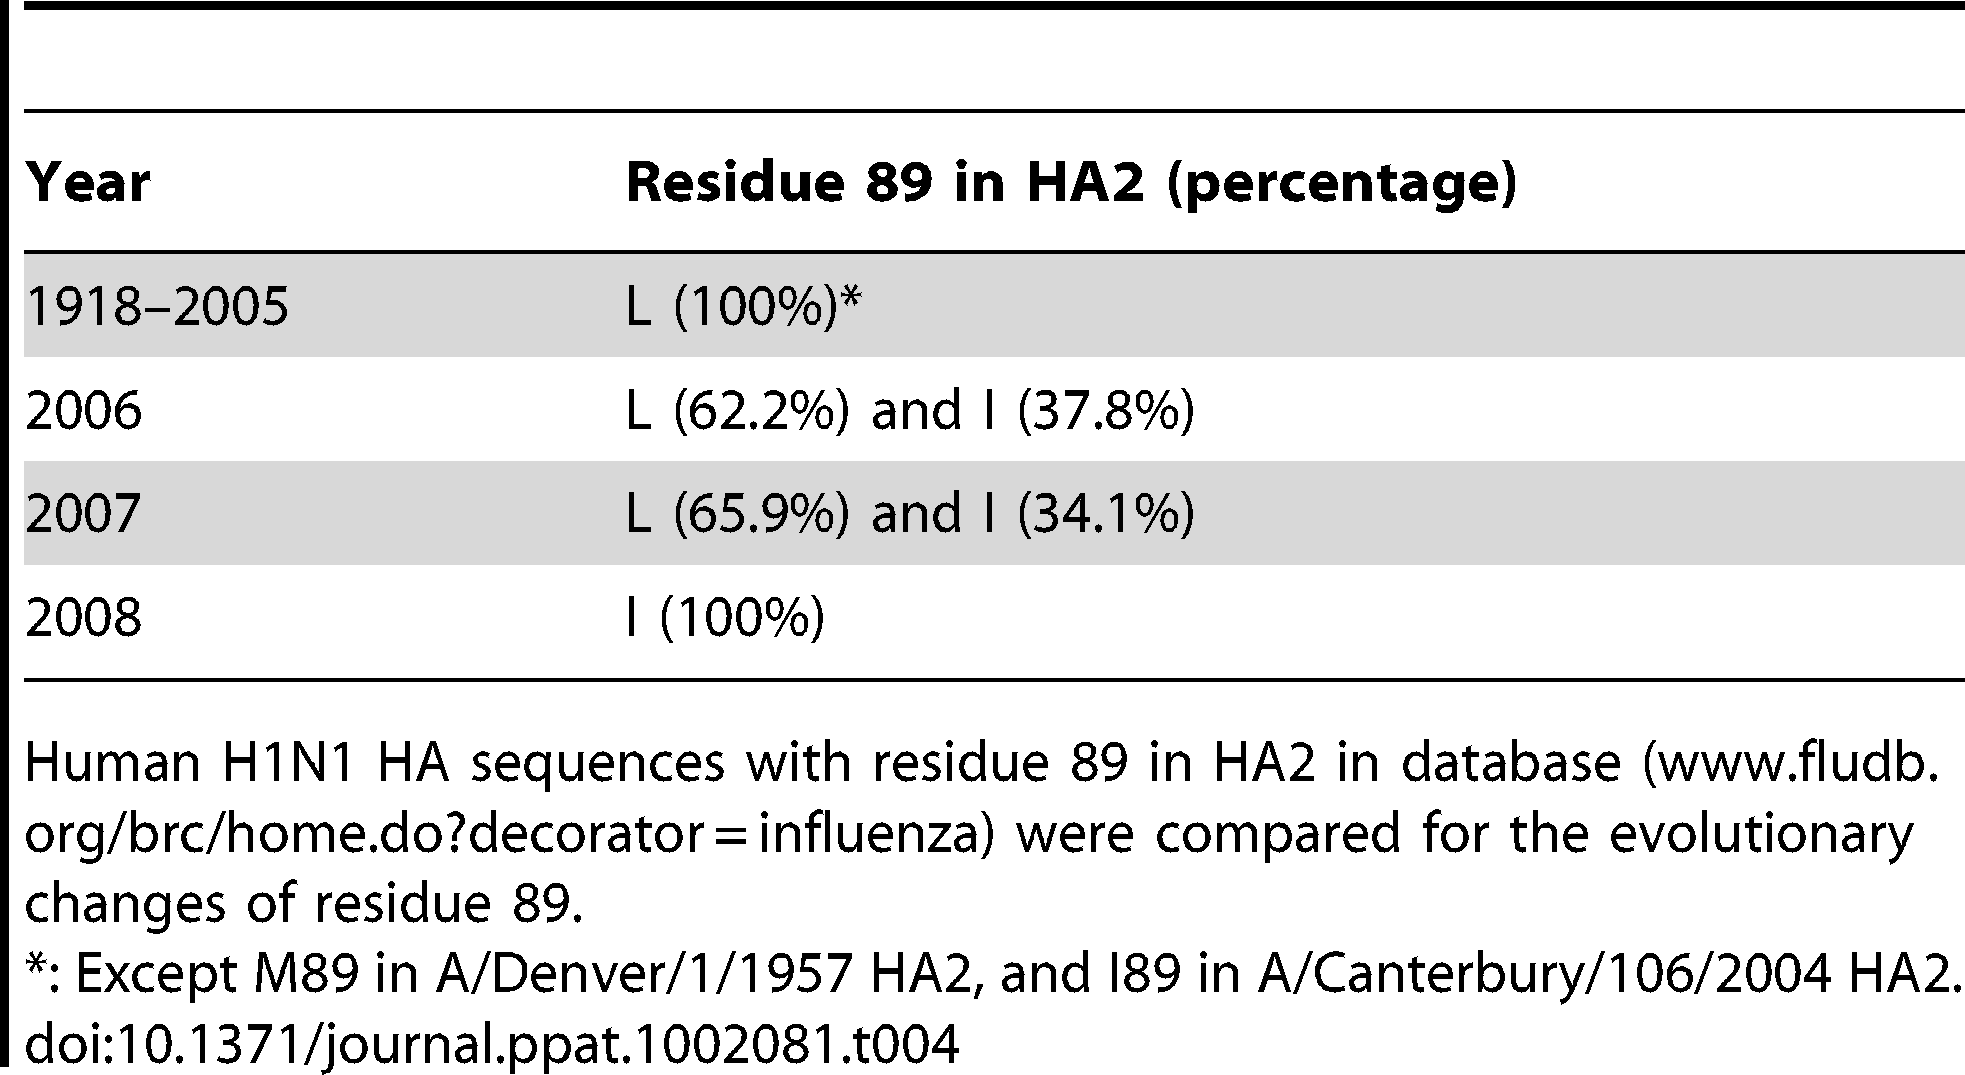 Evolutionary changes of residue 89 in human H1N1 HA2.